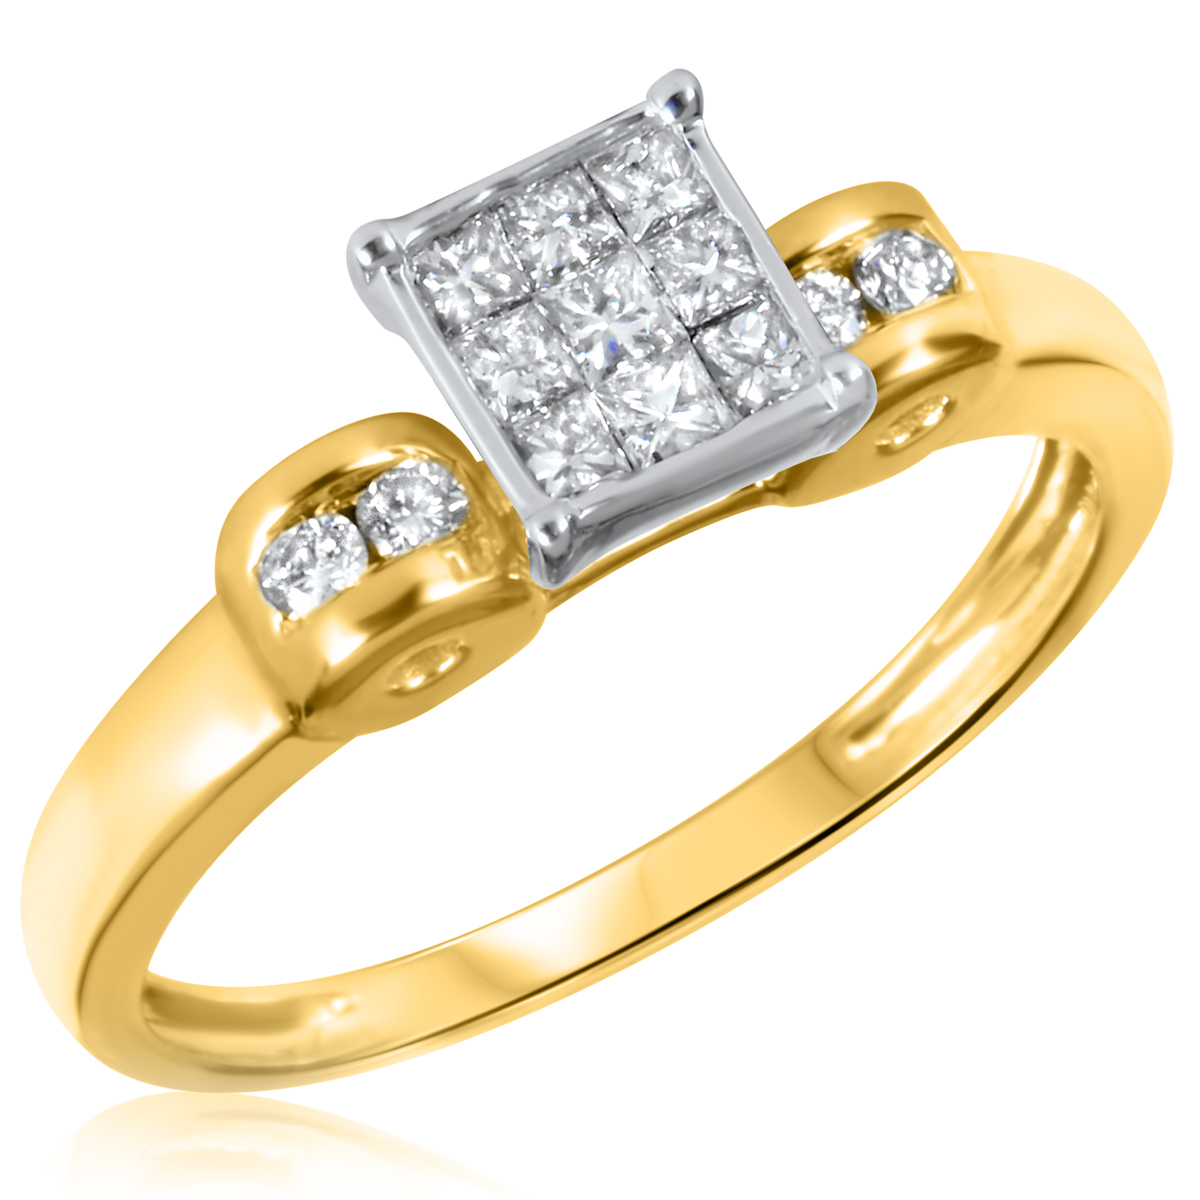 Brilliant Yellow Diamond Wedding Ring Sets 18 On Minimalist Design Women